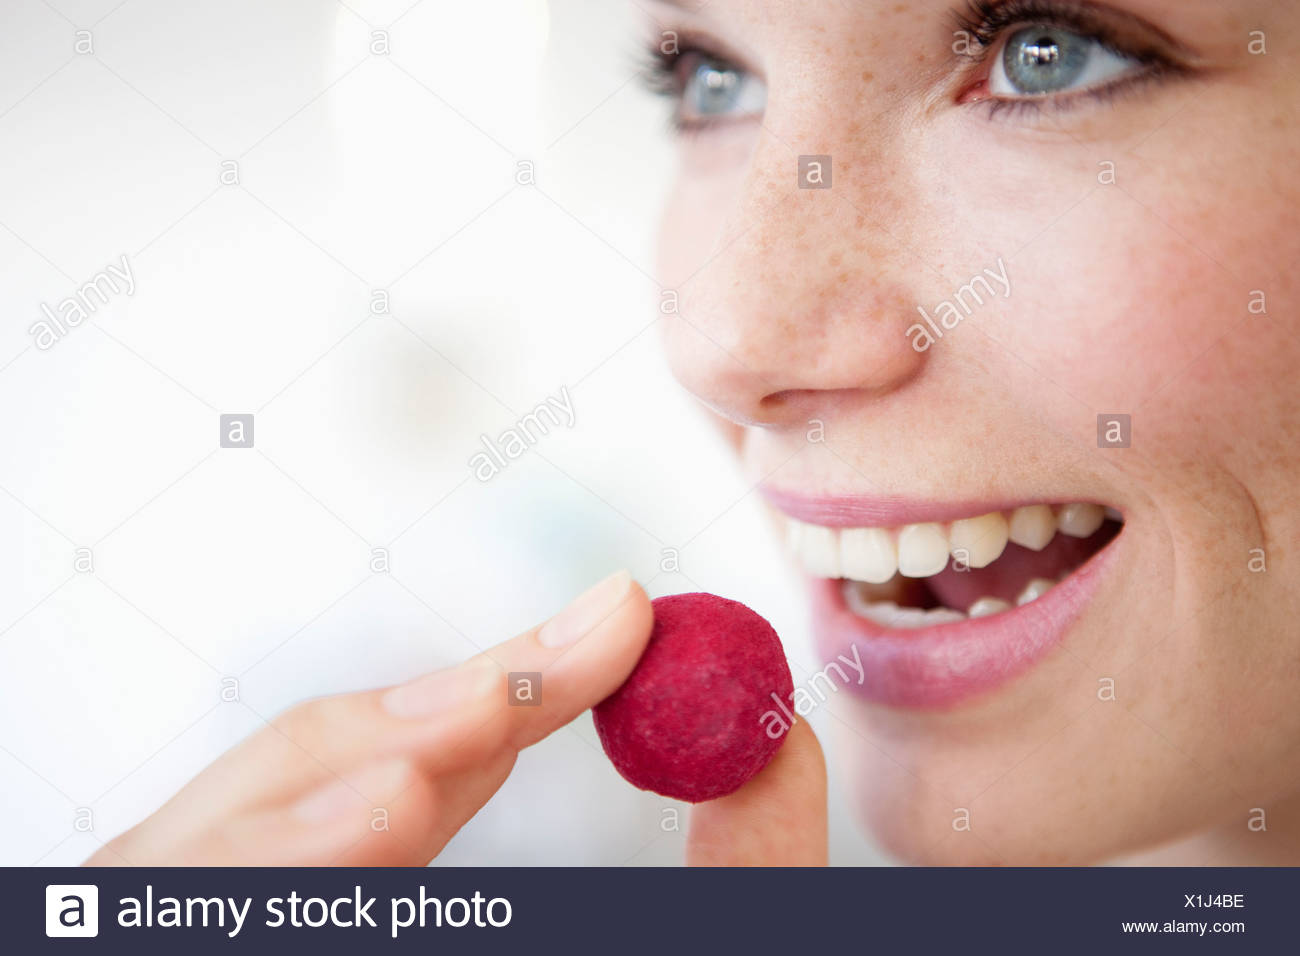 A woman eating a fruit flavored chocolate truffle - Stock Image